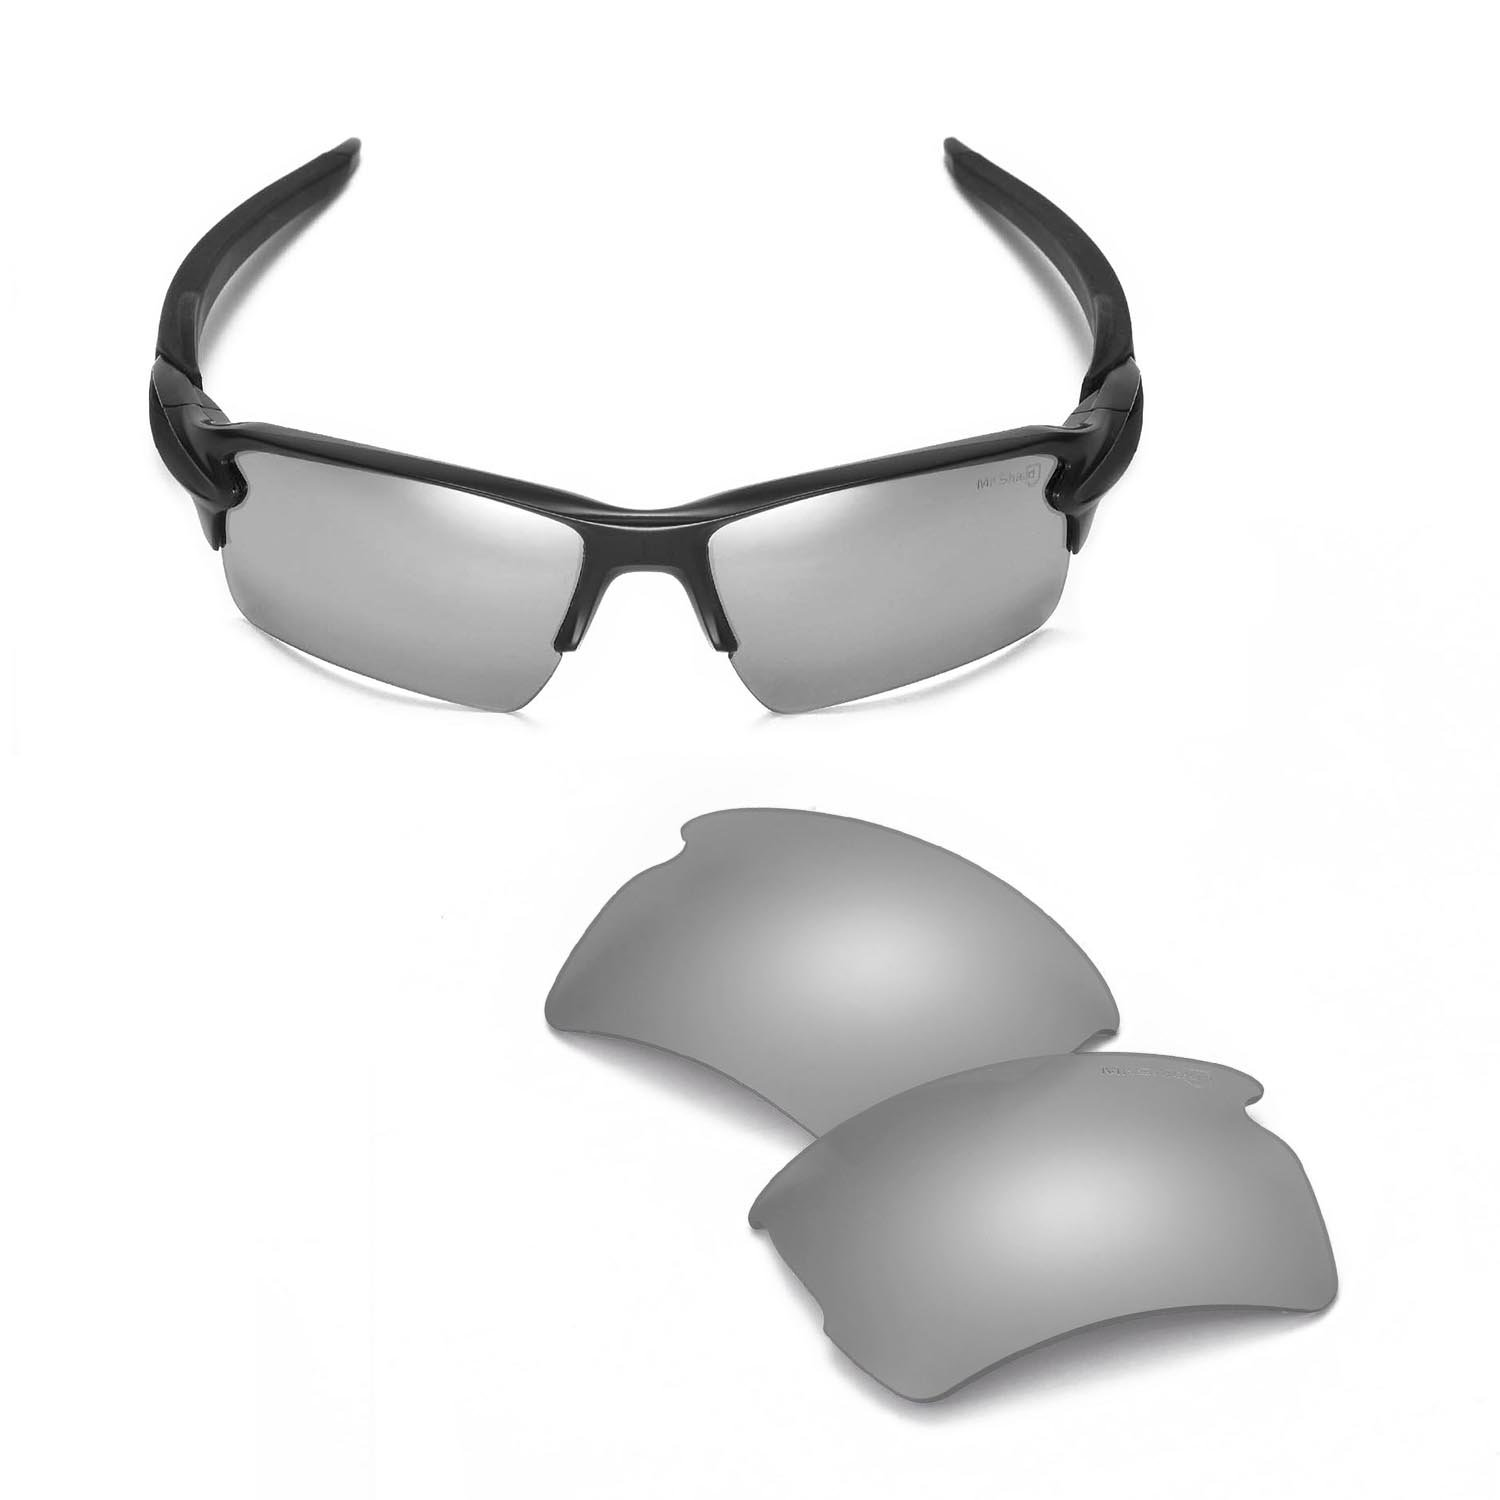 Walleva Replacement Lenses For Oakley Flak 2.0 XL Sunglasses - 14 Options Available (Titanium - Mr. Shield Polarized)